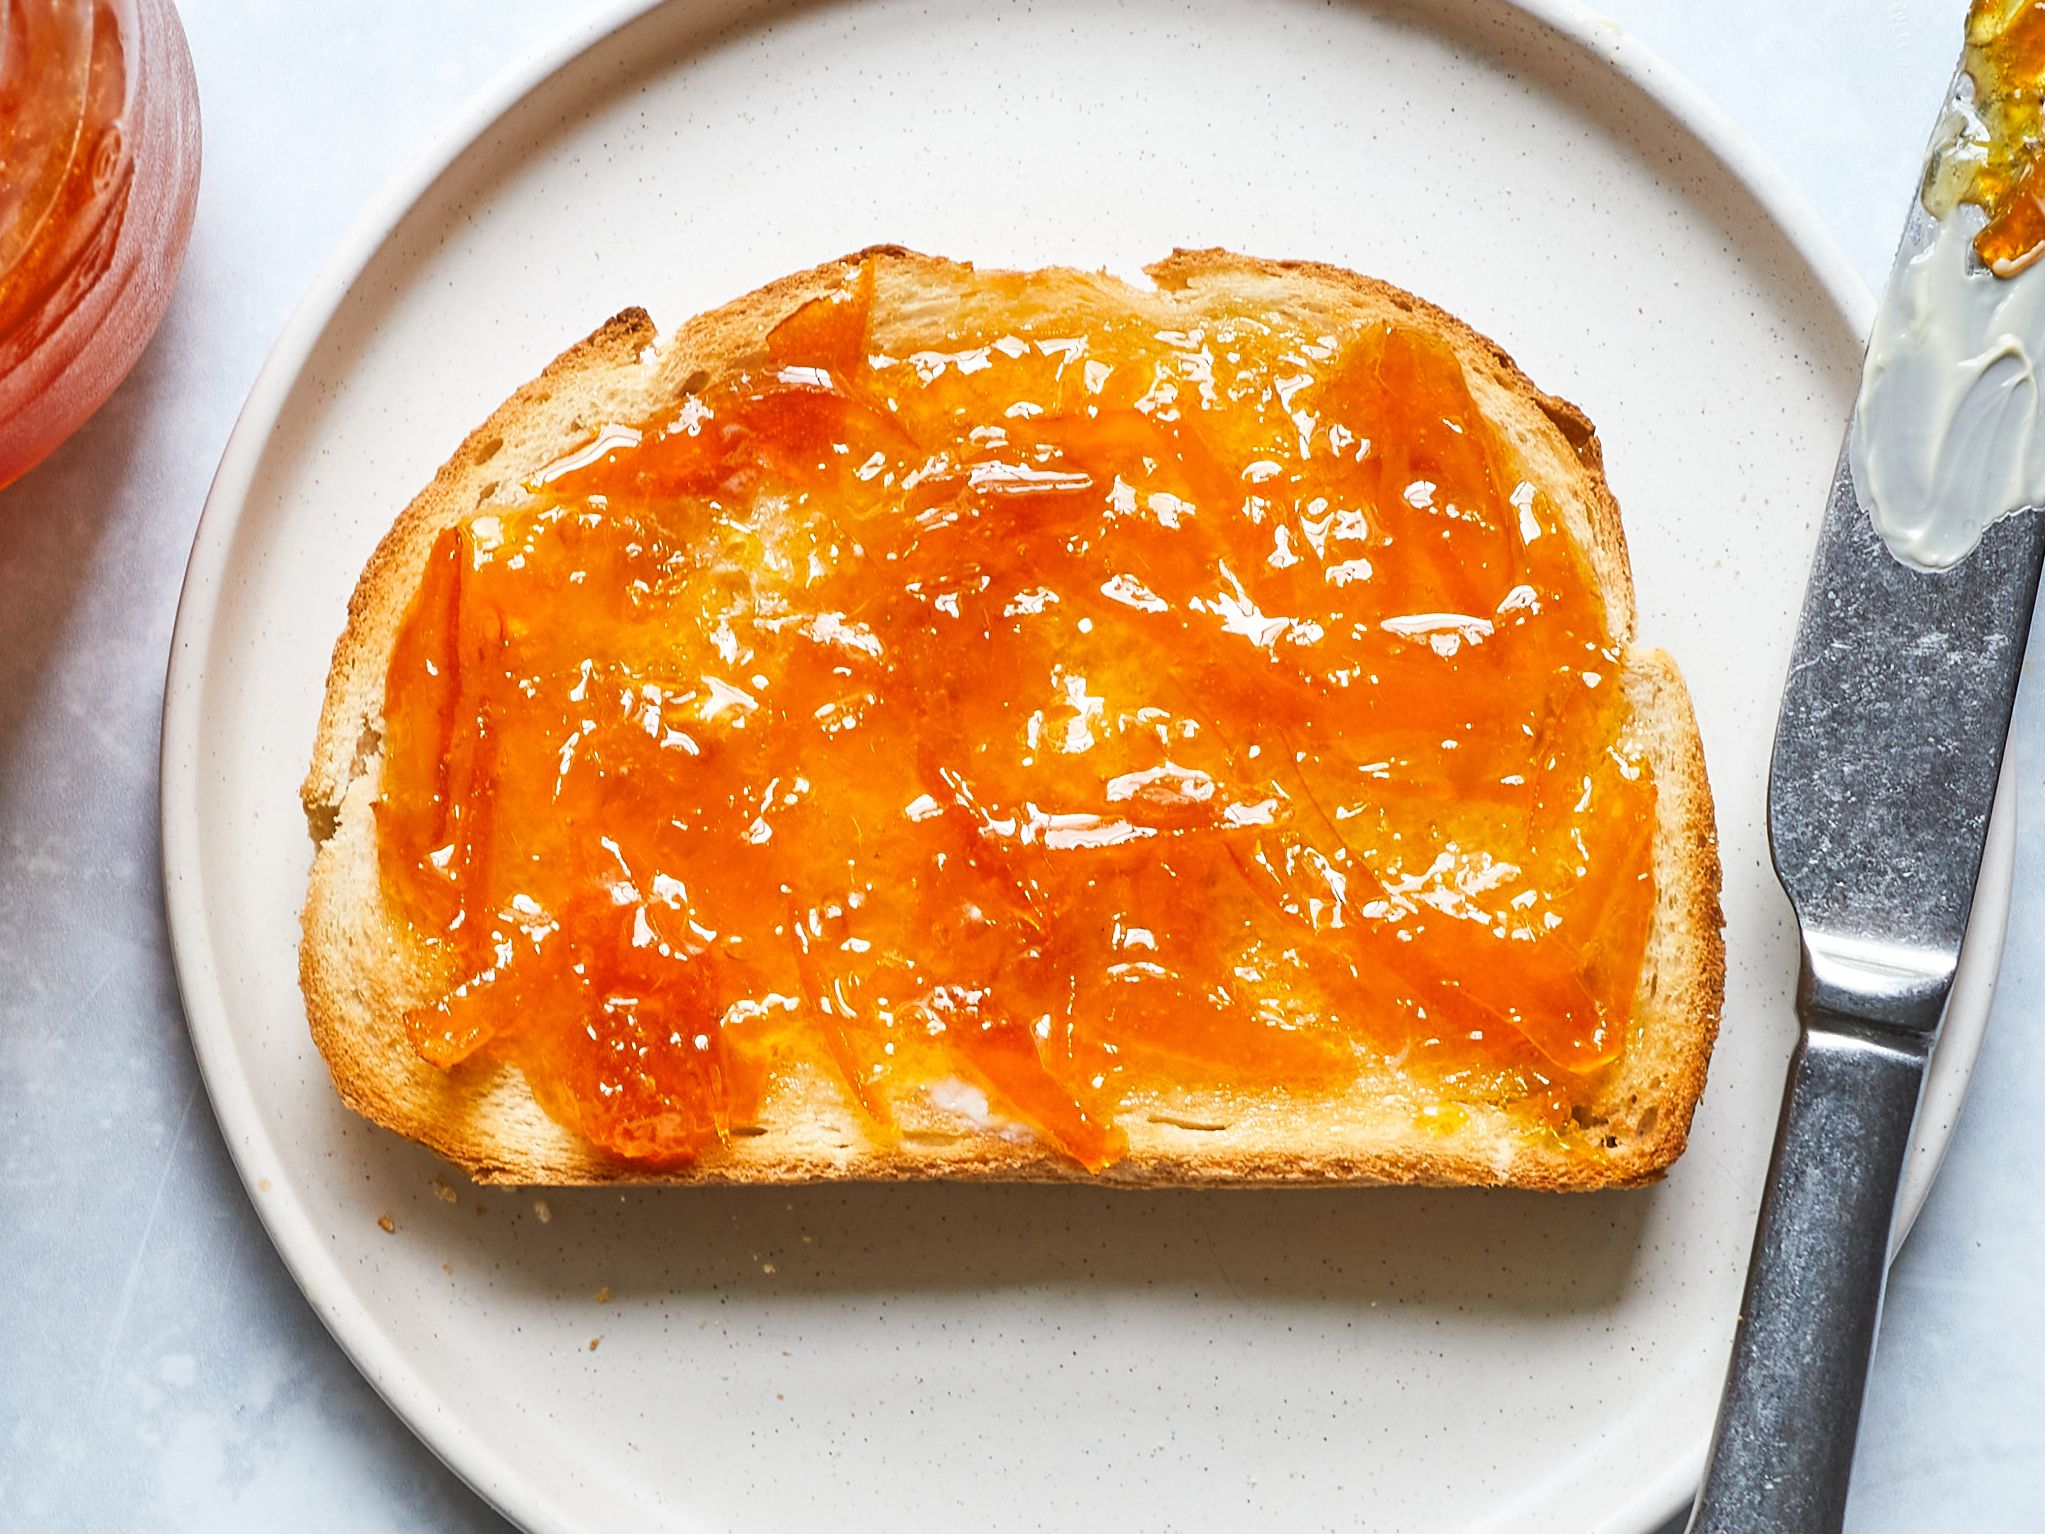 Homemade Orange Marmalade Recipe